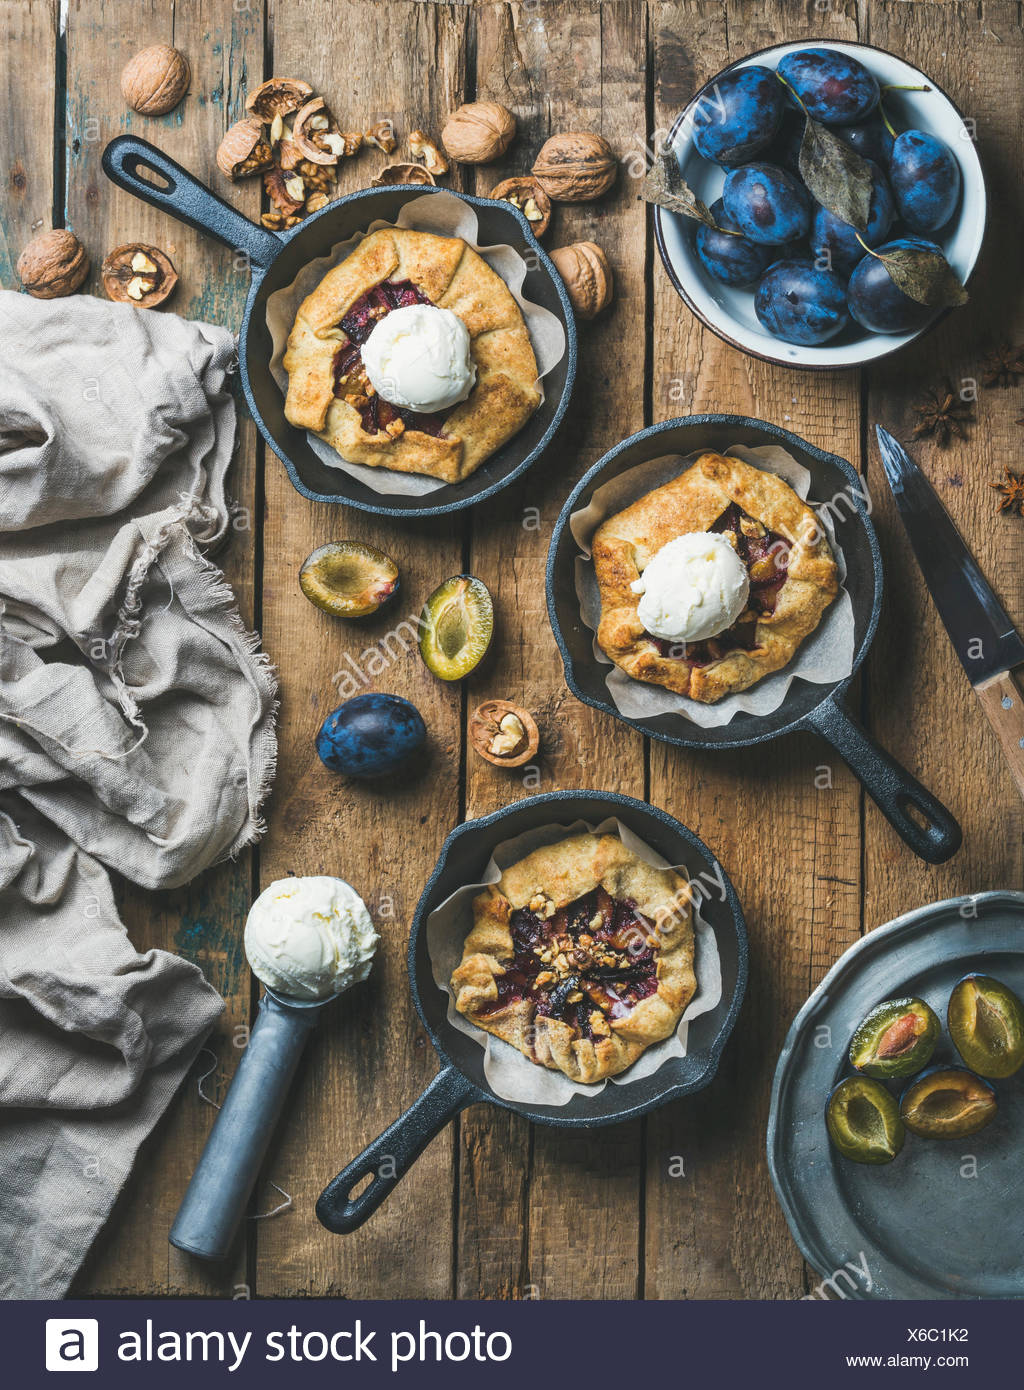 Plum and walnut crostata pie with ice-cream scoops in individual cast iron pans over rustic wooden table, top view. Slow food concept - Stock Image